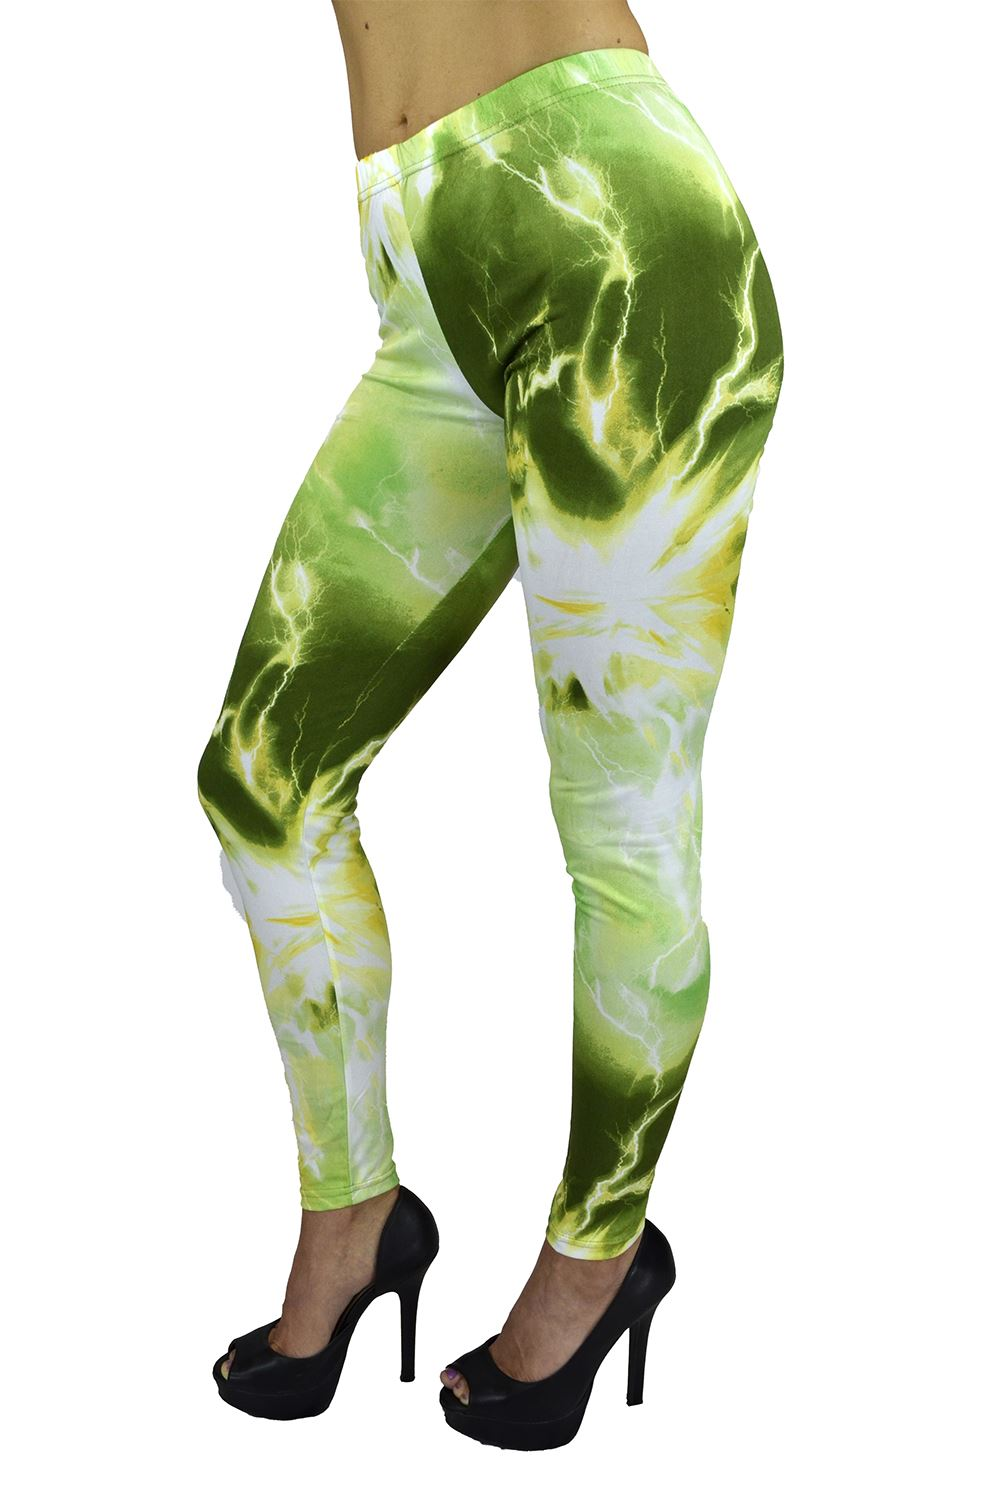 Women's Full Length Leggings - Women's Chemistry Electrifying Energy in Olive Printed Legging